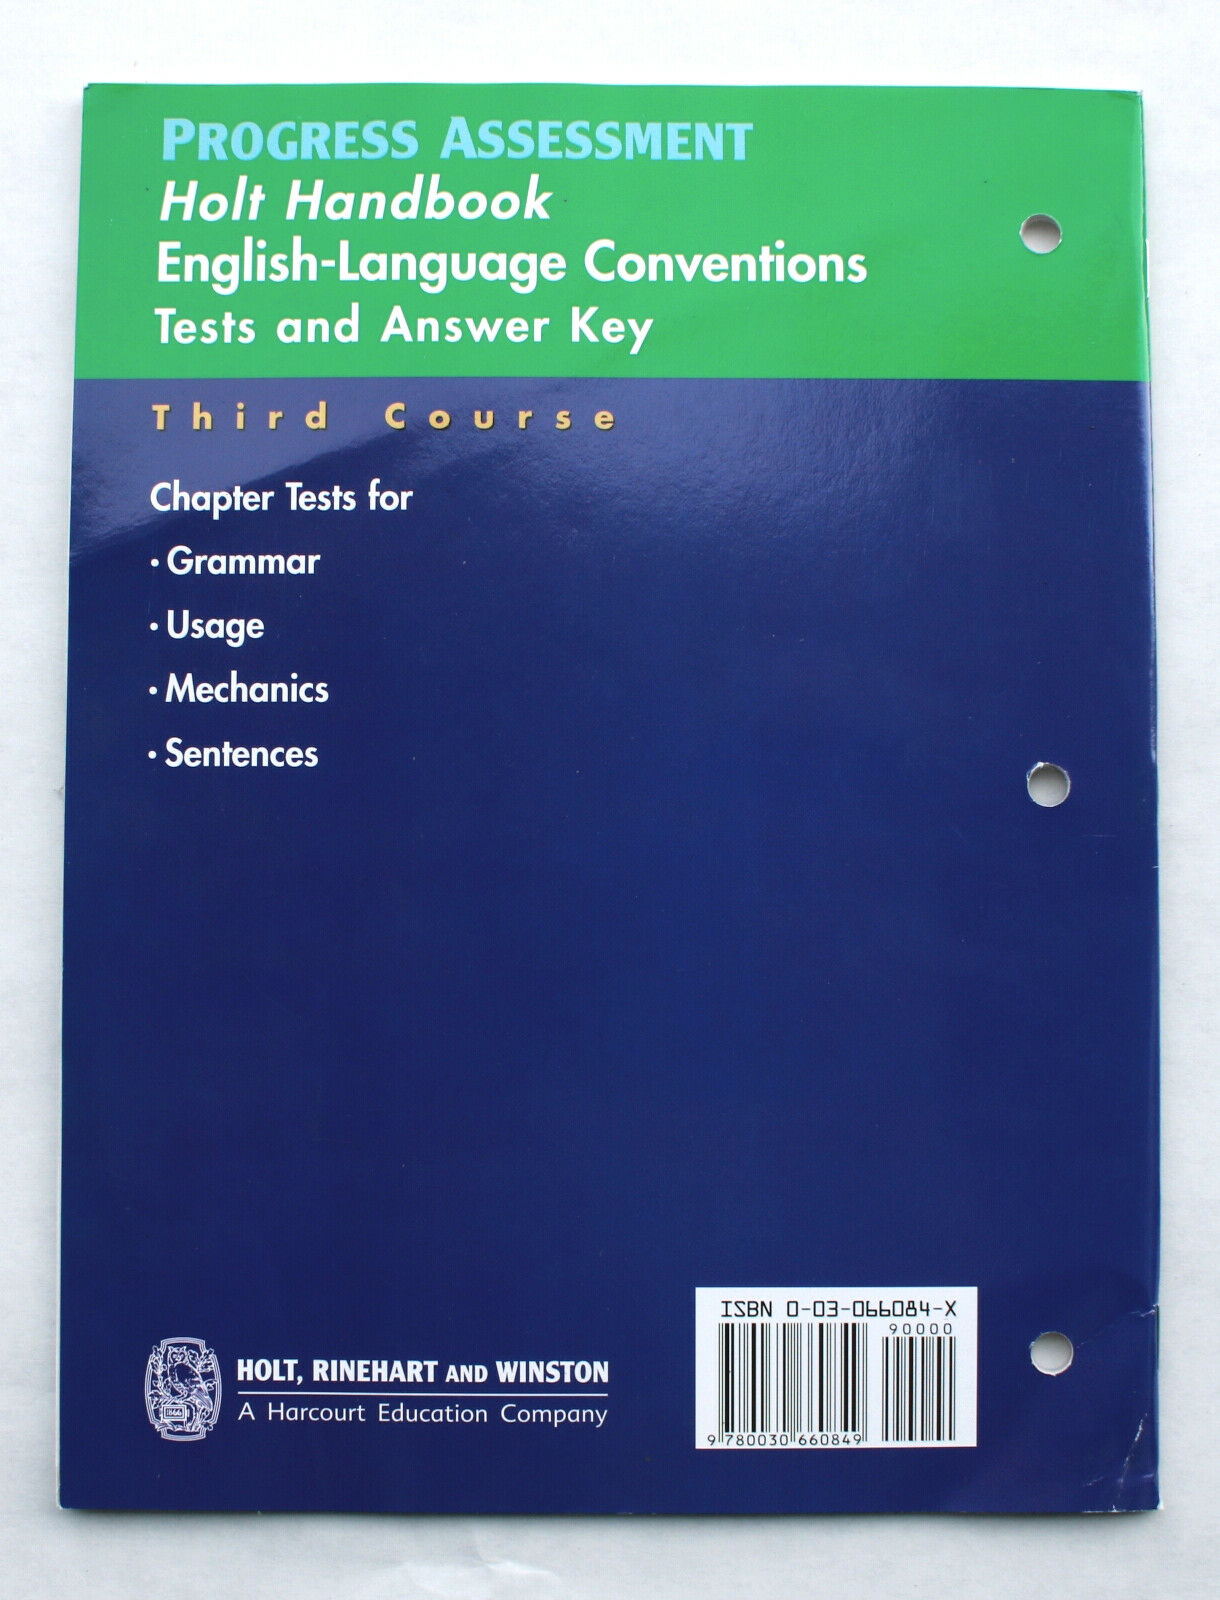 Holt Handbook Third Course English Language Conventions Test And Answer Key 9780030660849 Ebay [ 1600 x 1220 Pixel ]